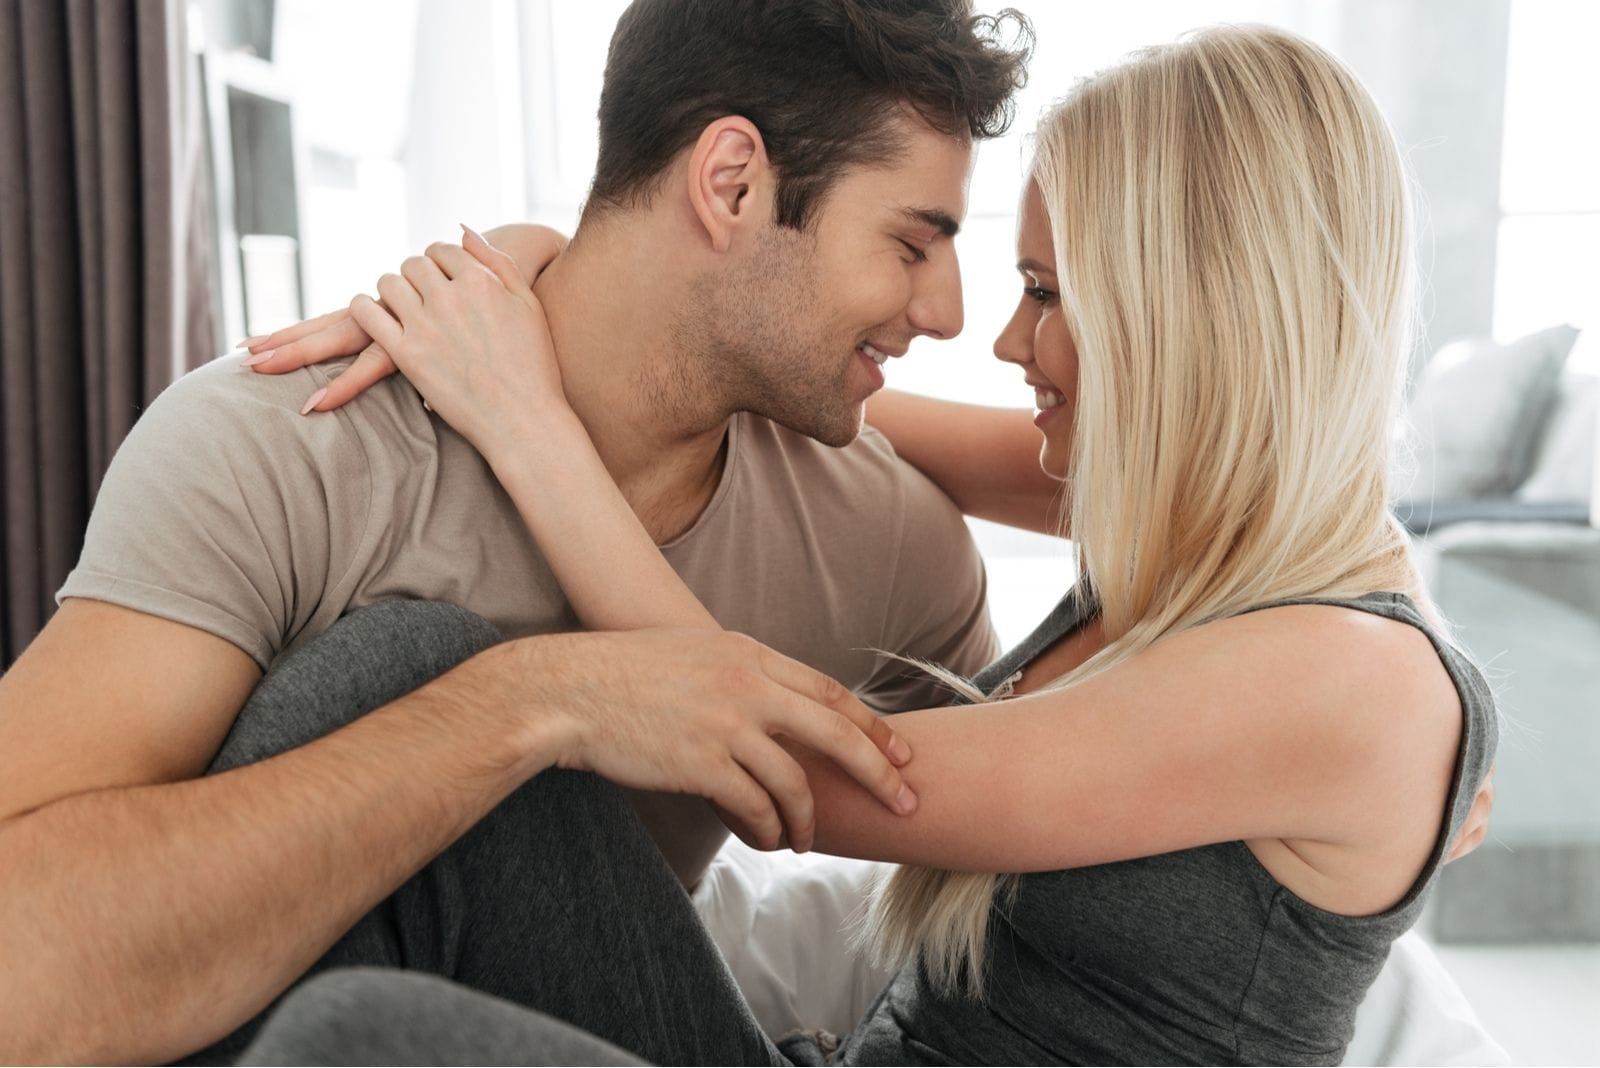 young handsome man hugging woman inside the home